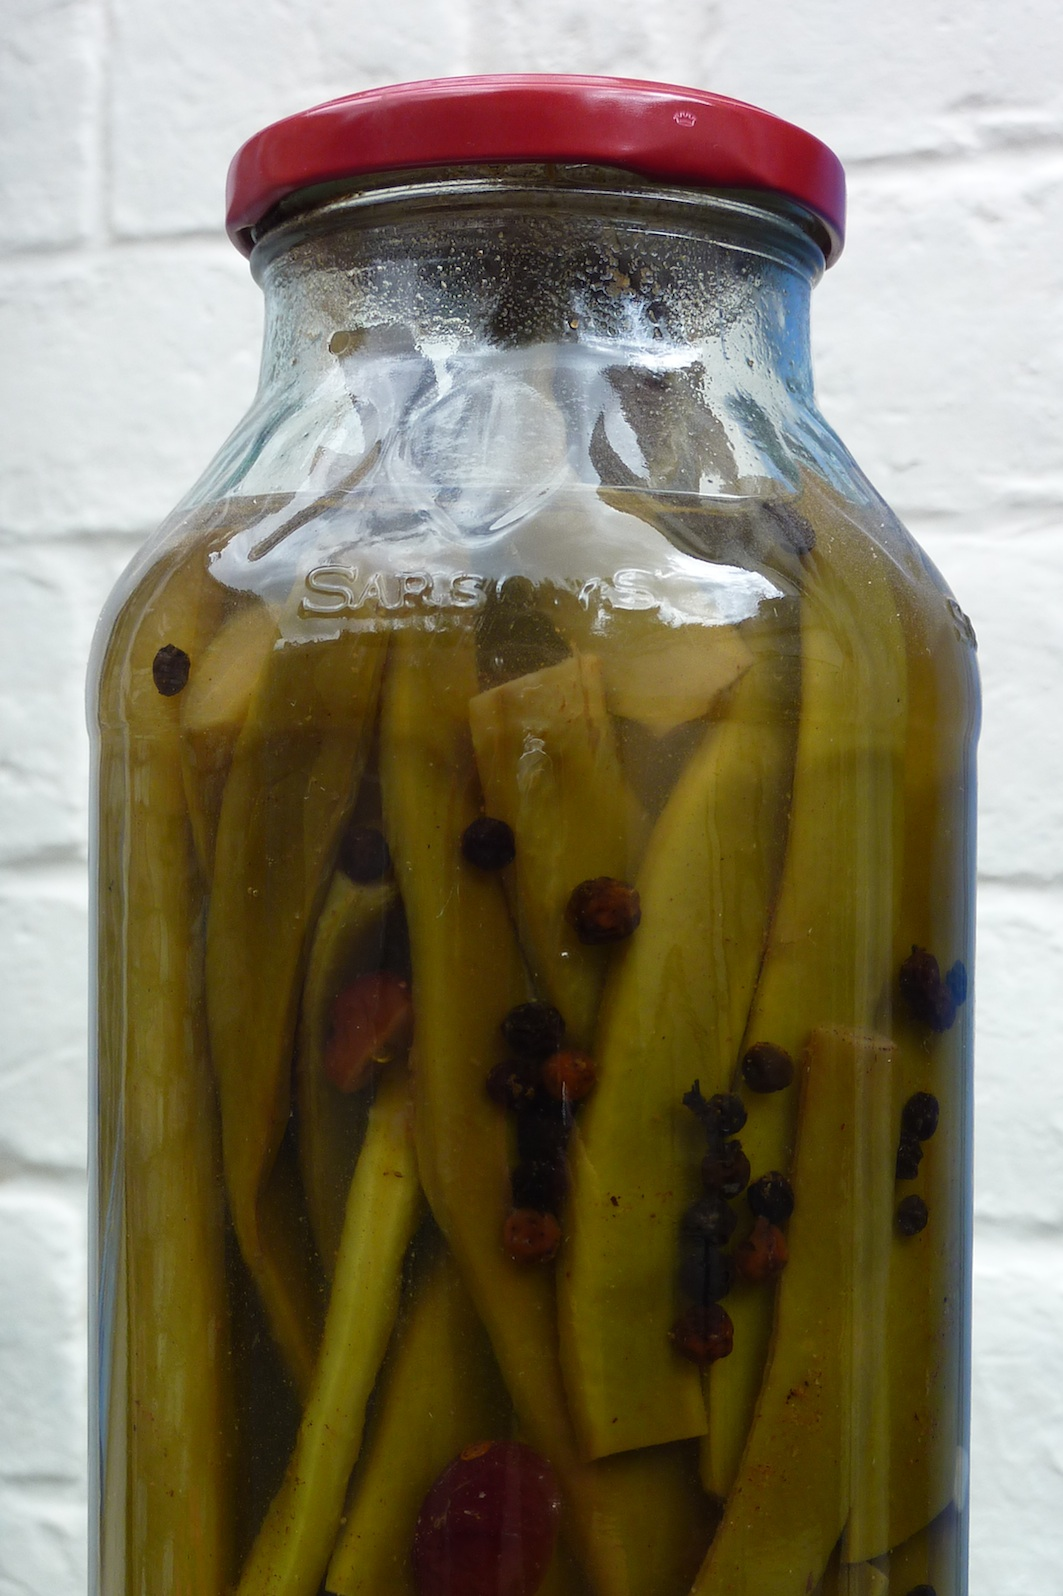 pickling runner beans (inspired by Pam Corbin's River Cottage Preserves piccalilli)